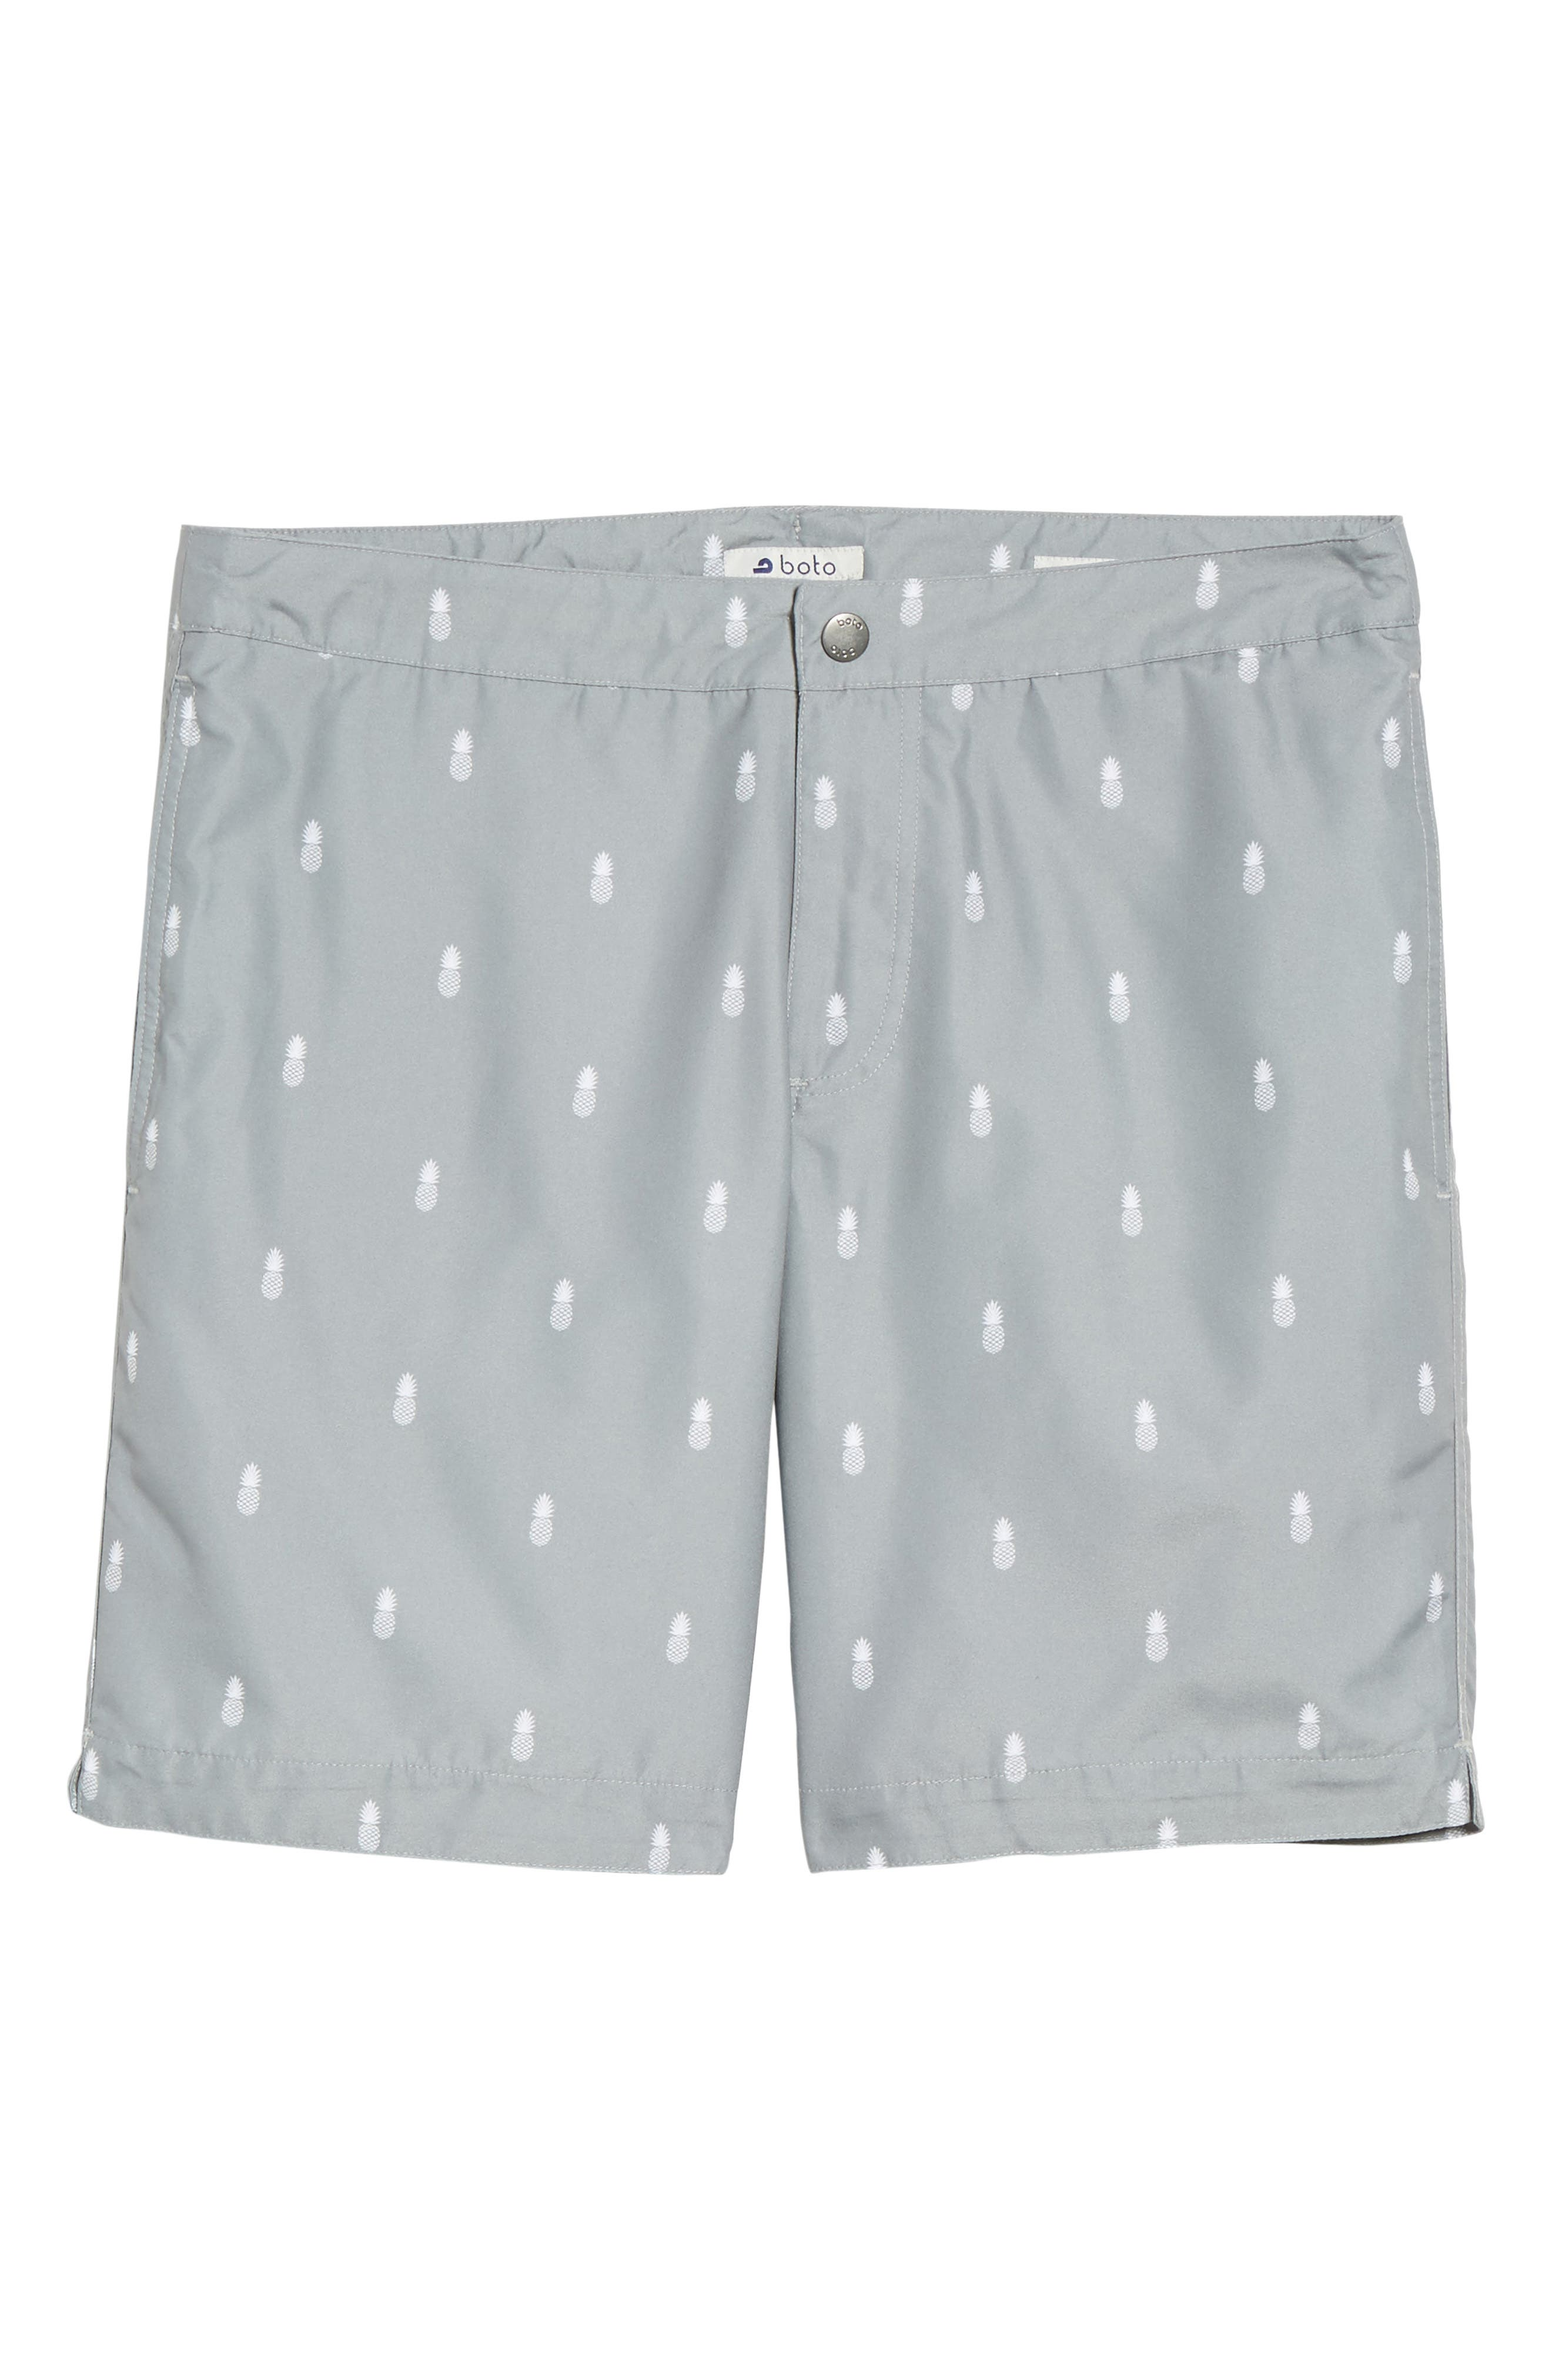 Aruba Tailored Fit Swim Trunks,                             Alternate thumbnail 6, color,                             Grey Pineapple Print